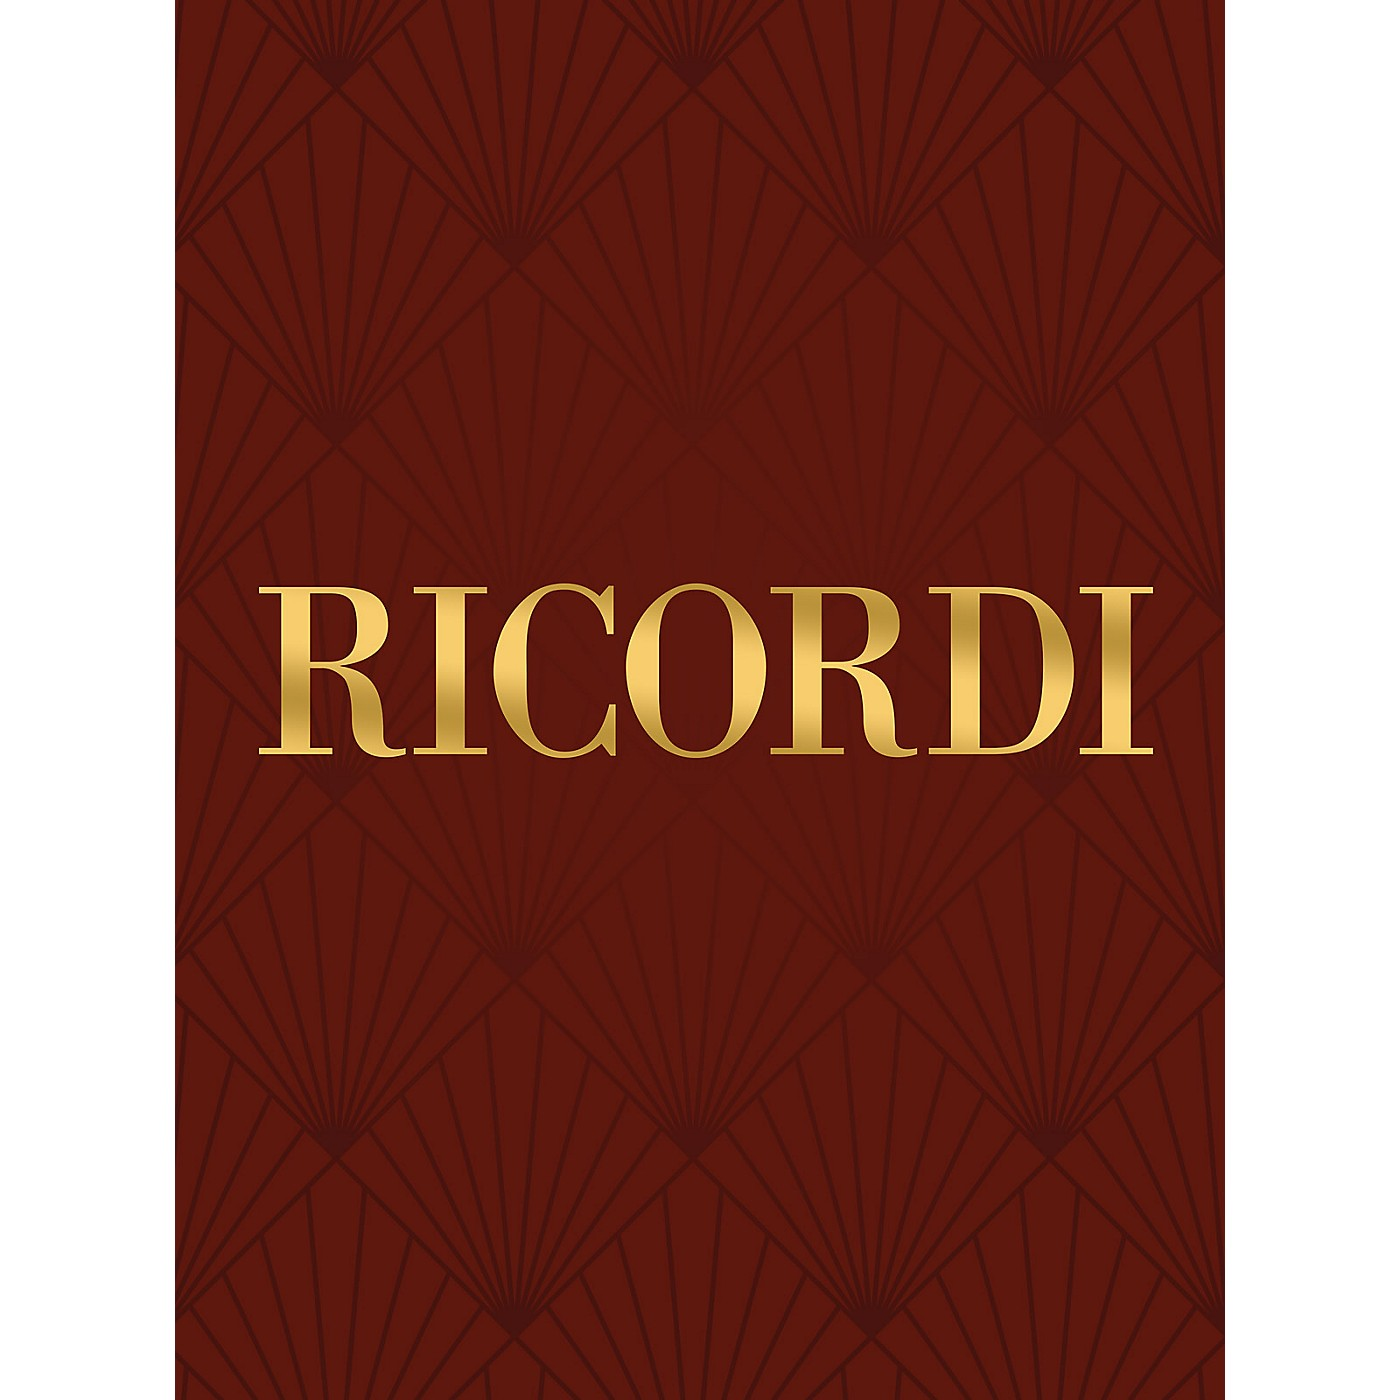 Ricordi Don Giovanni, Clothbound, Italian only (Vocal Score) Vocal Score Series by Wolfgang Amadeus Mozart thumbnail